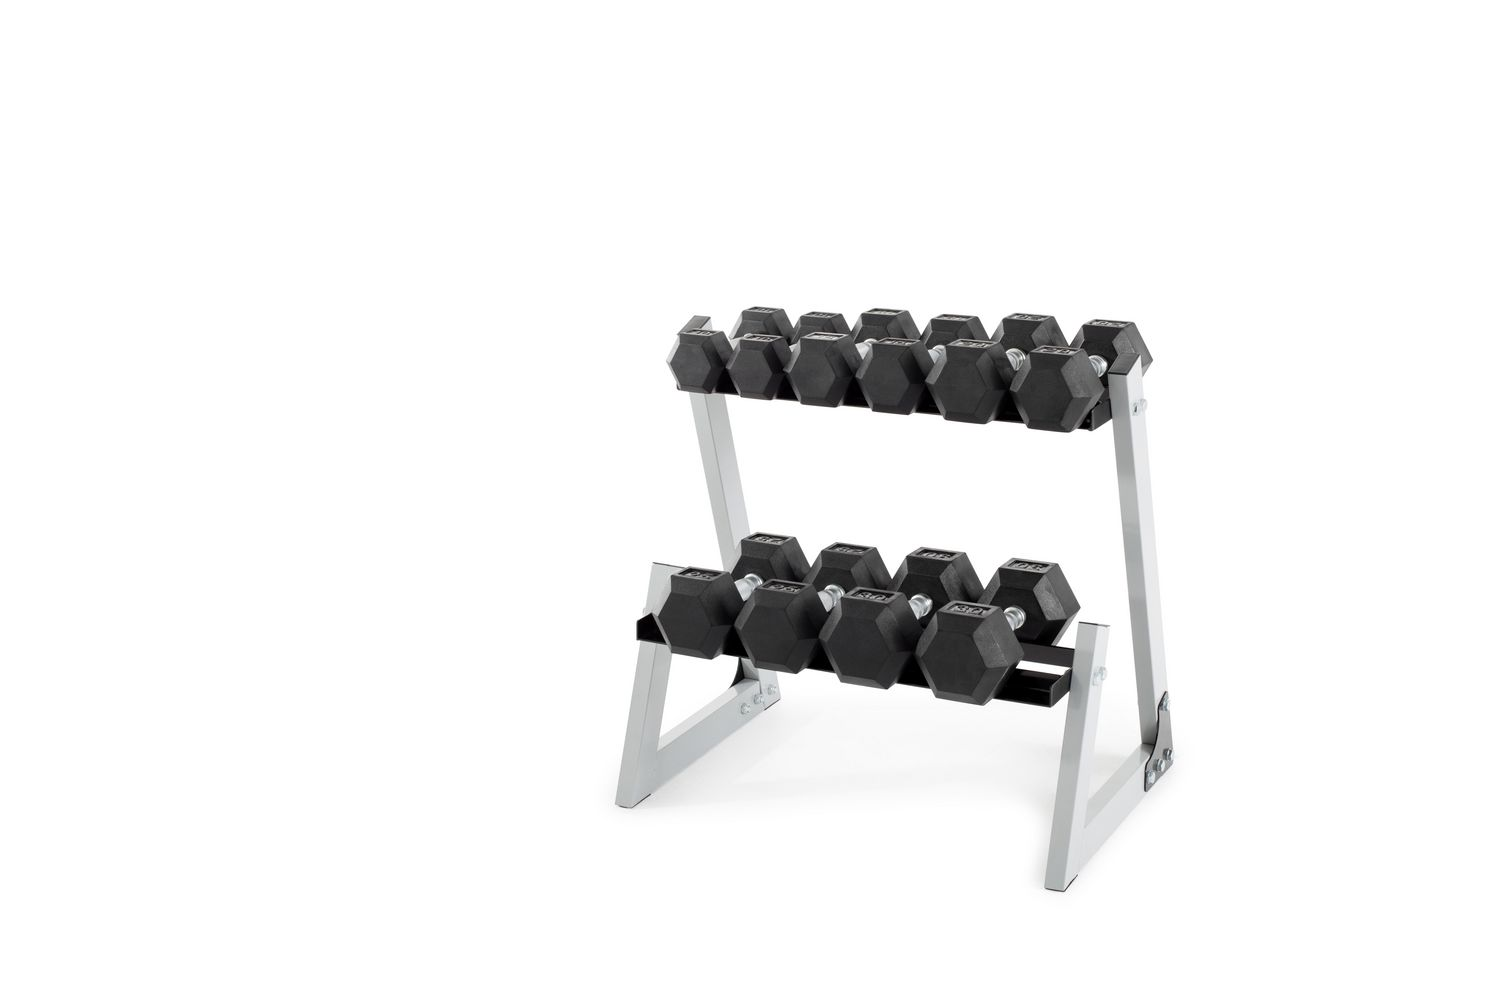 2 20LB Weider Rubber Hex Dumbbells BRAND NEW 40 LBS TOTAL FREE//FAST SHIPPING